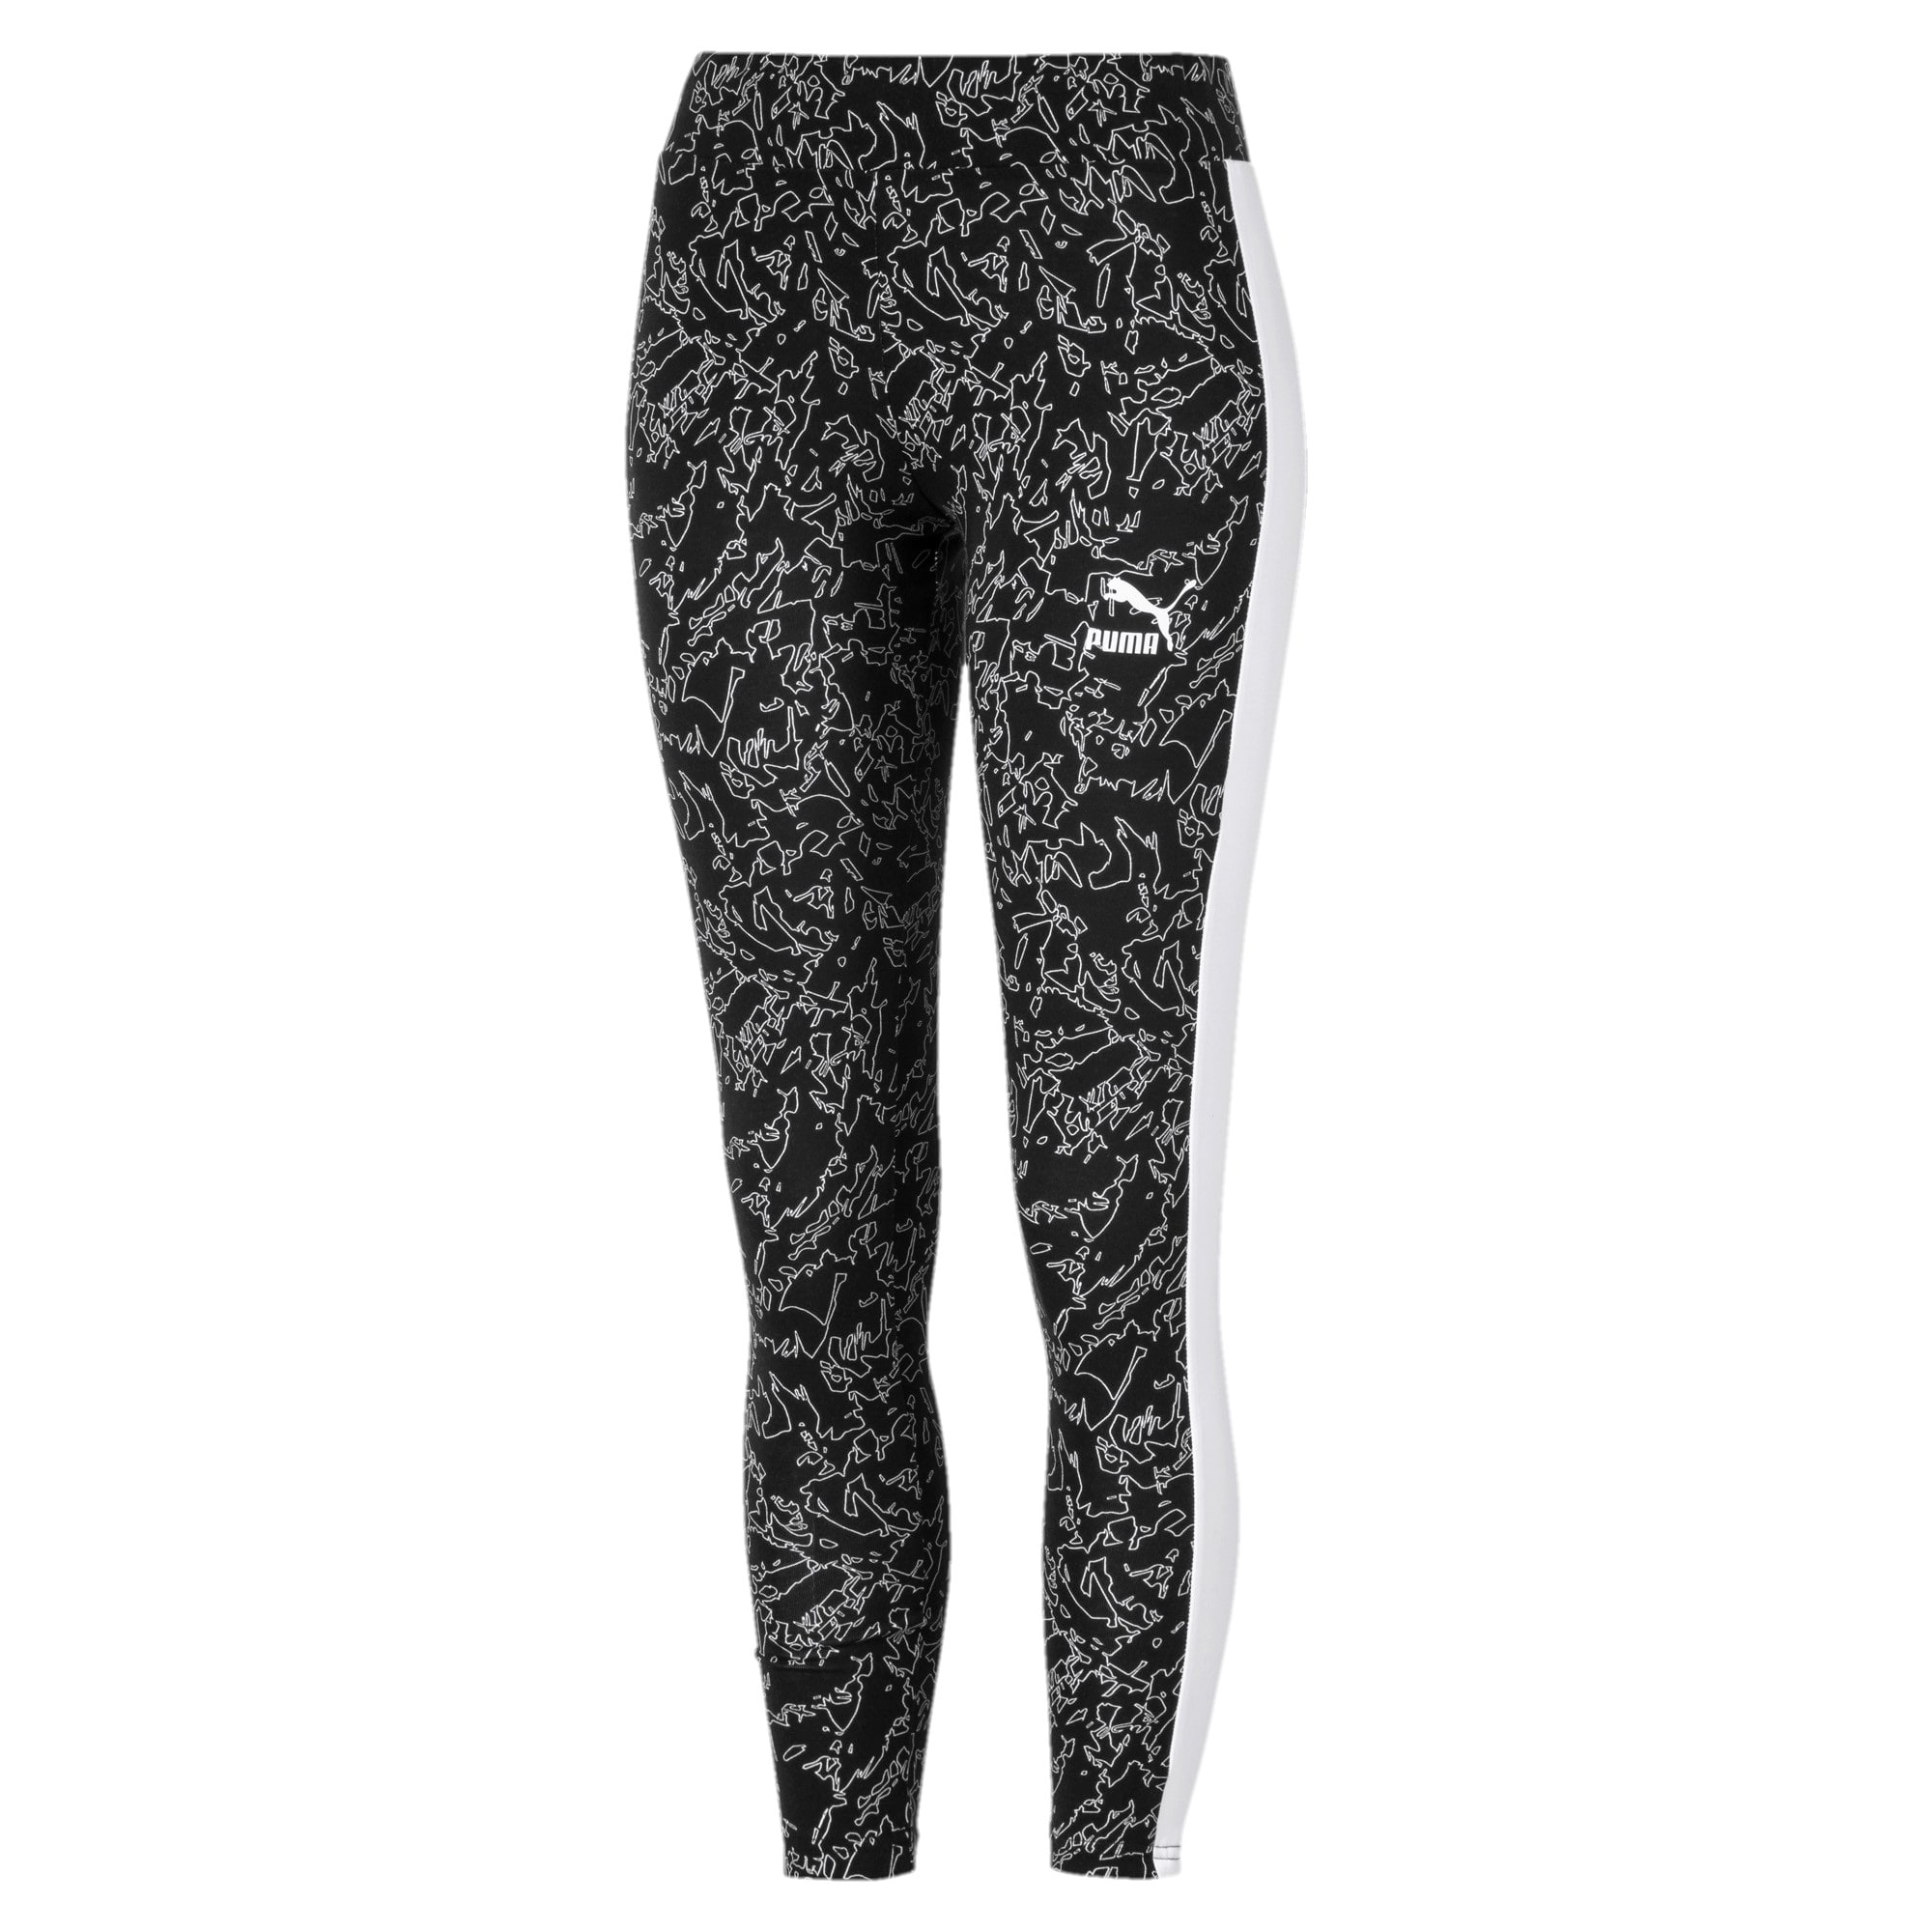 Thumbnail 4 of Classics T7 Women's Leggings, Puma Black, medium